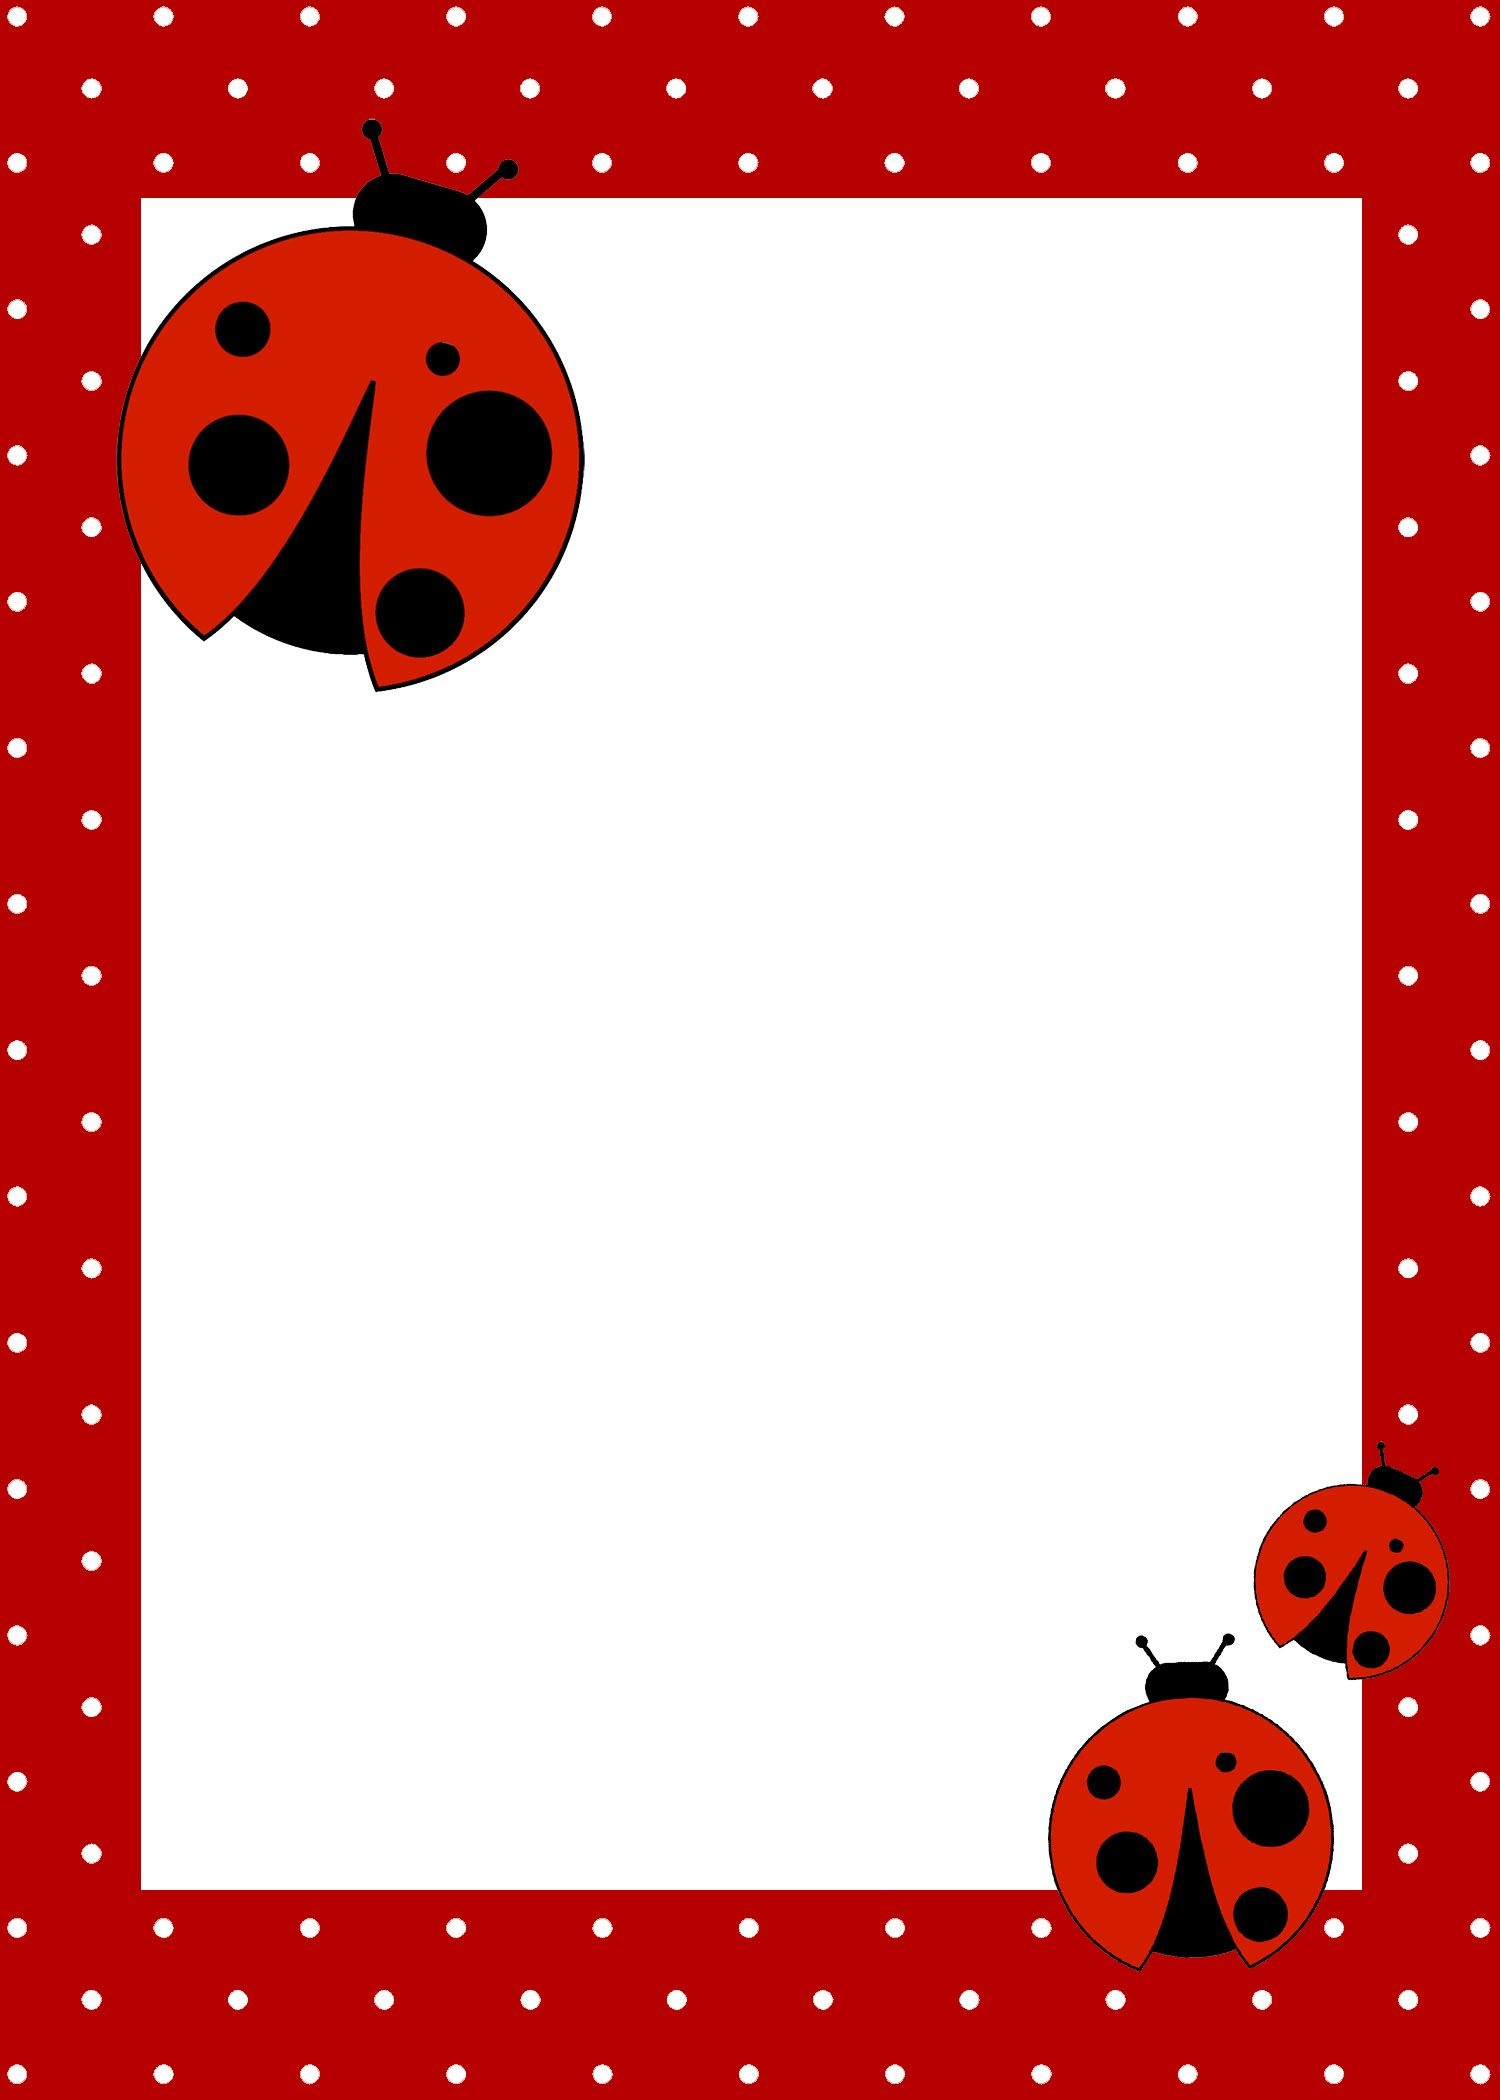 Ladybug Birthday Party With Free Printables | Lienky | Ladybug - Free Printable Ladybug Invitations